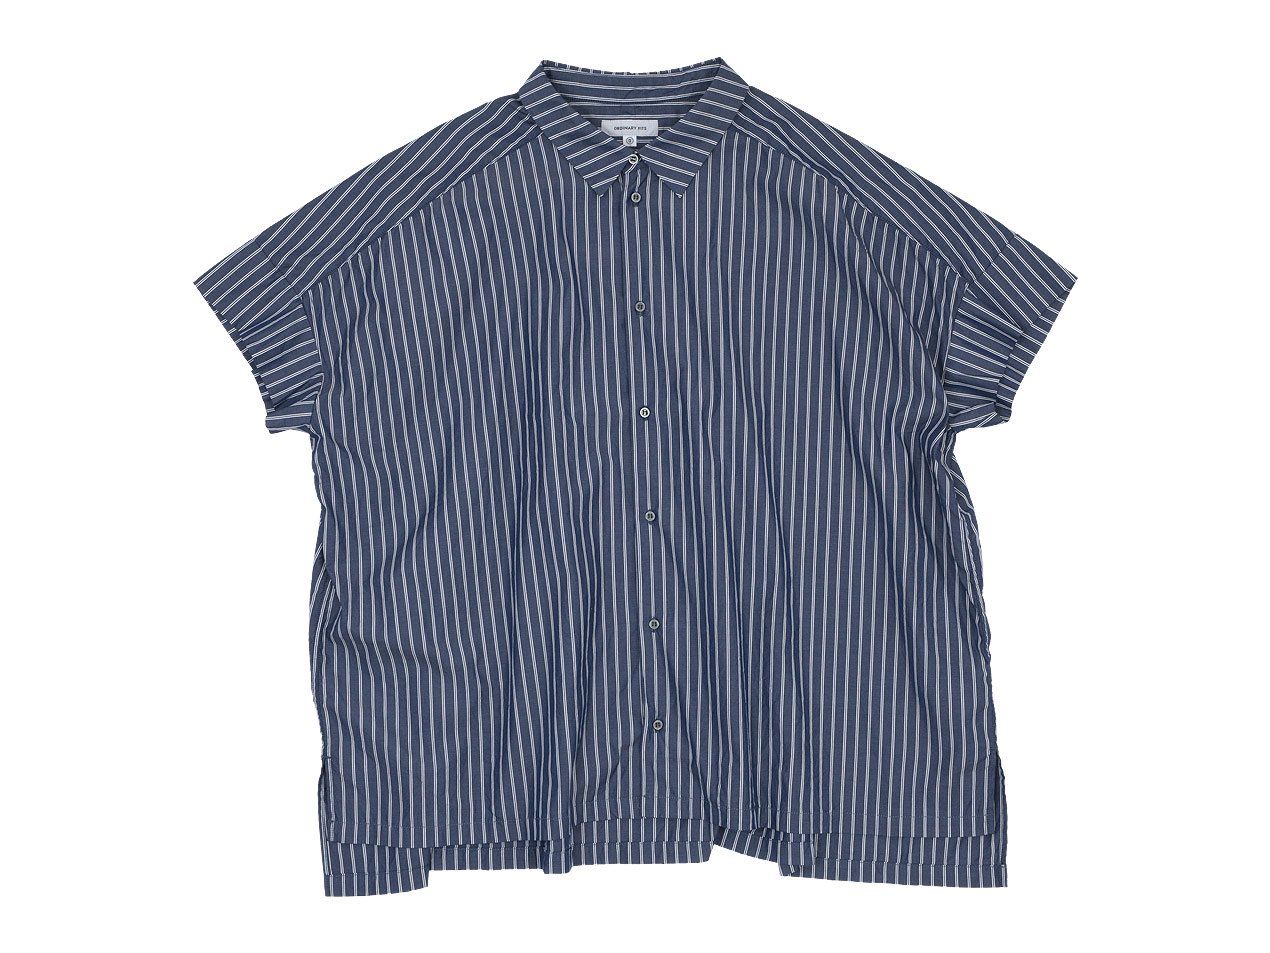 ordinary fits WIDE BARBER SHIRT STRIPE NAVY